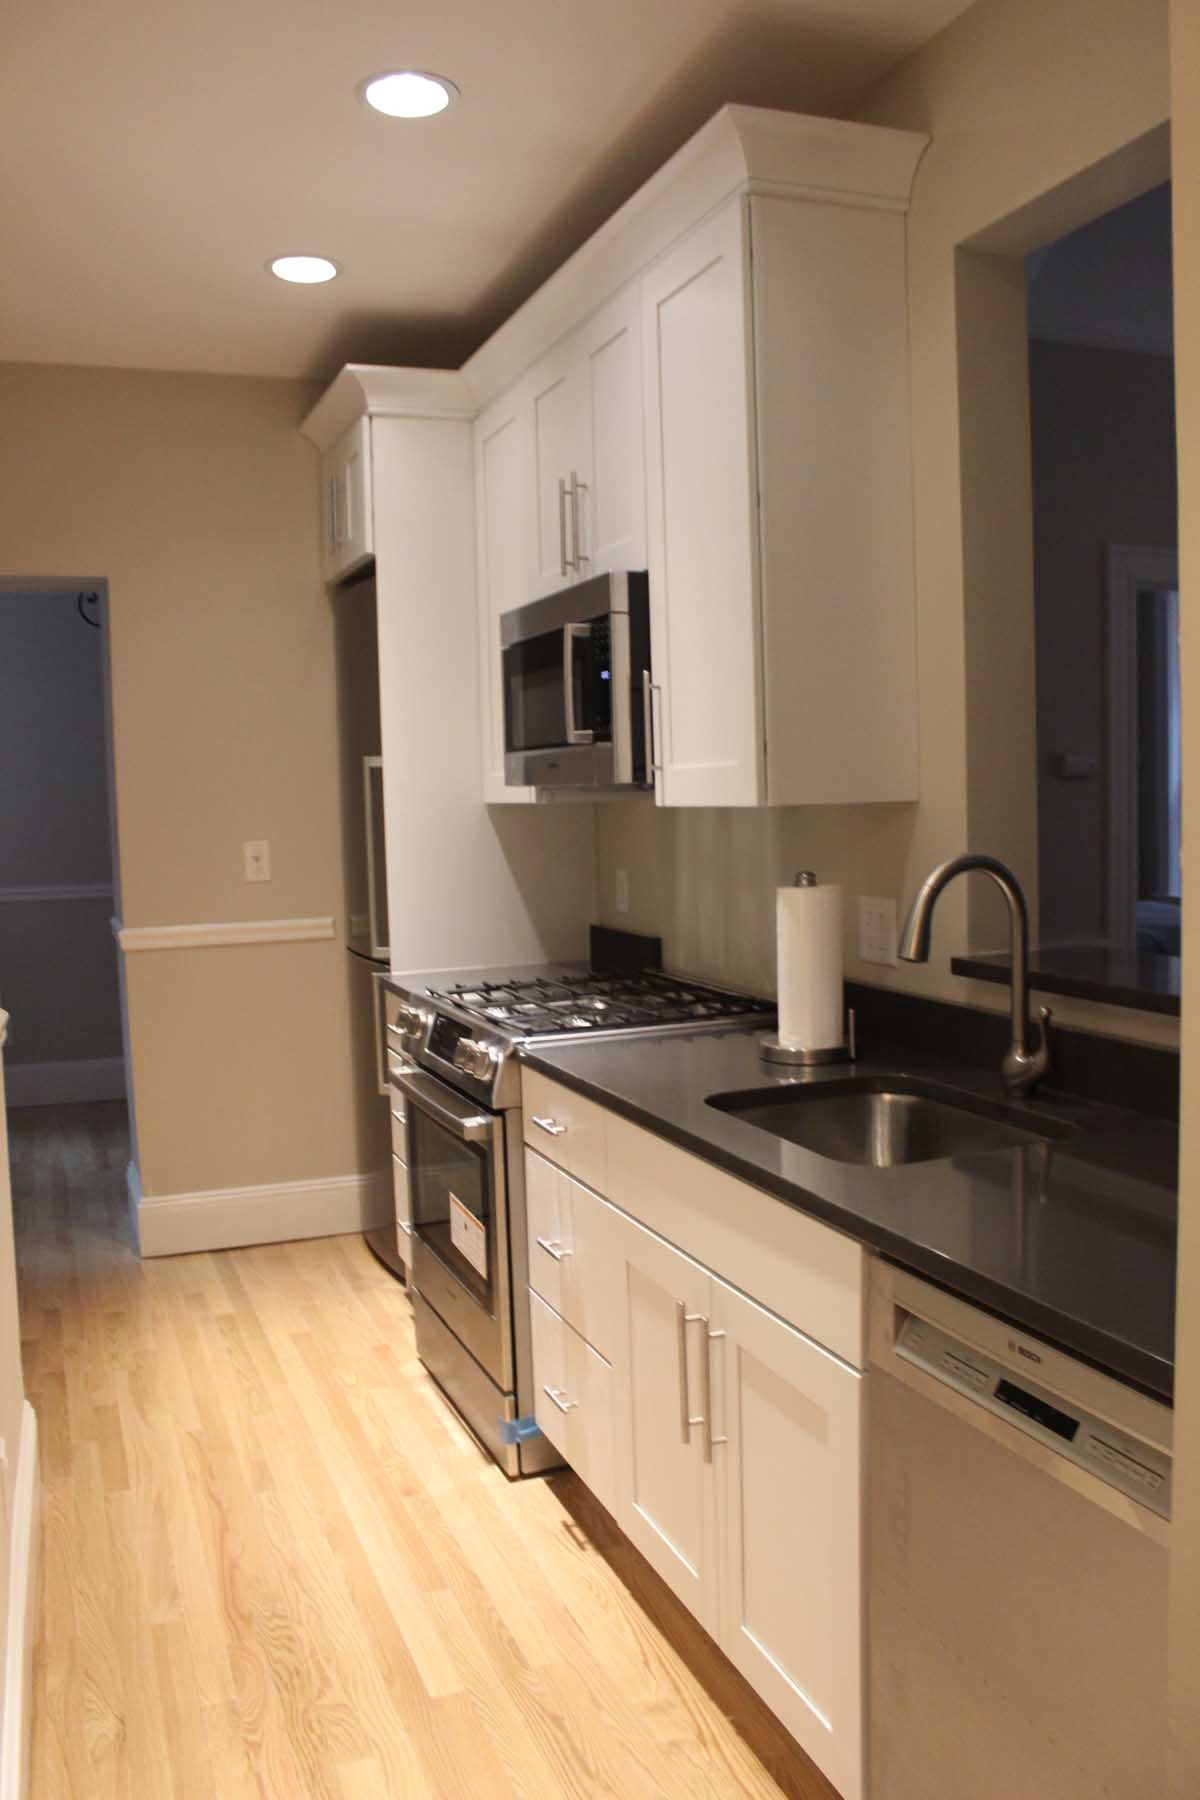 After Arlington kitchen remodel - wood floor, cabinets, countertop, lighting